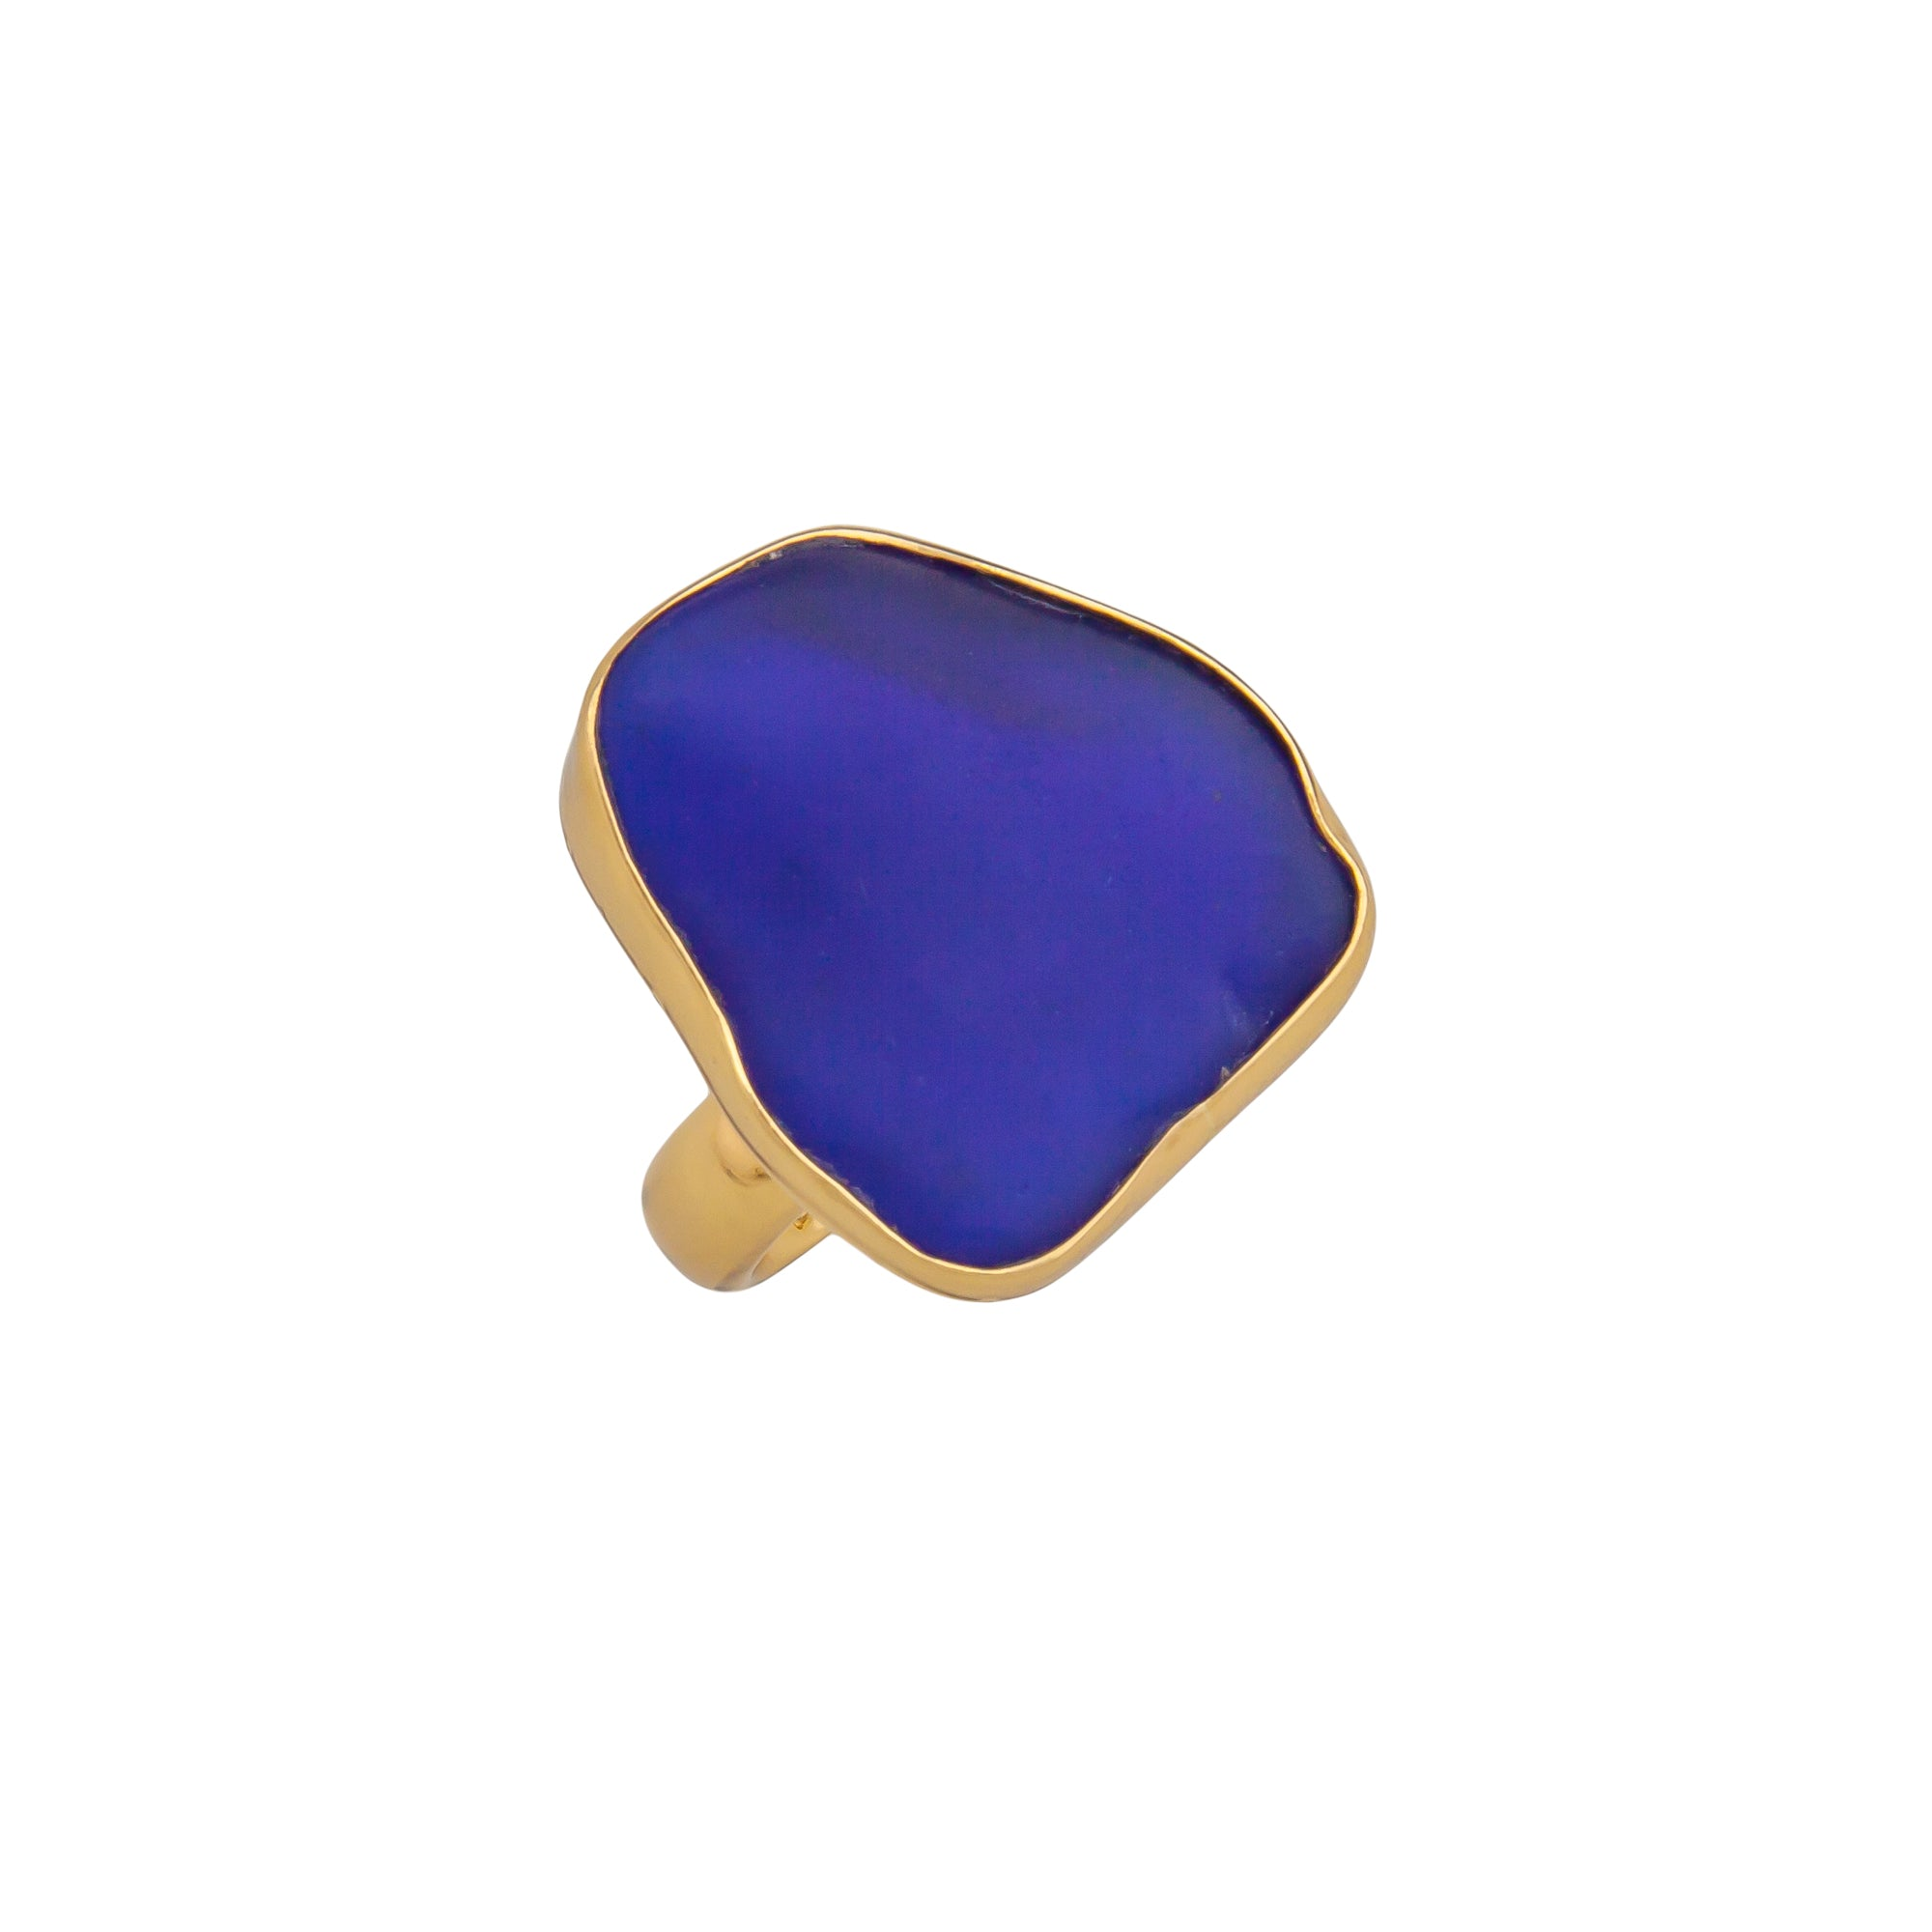 alchemia-cobalt-blue-recycled-glass-adjustable-ring - 1 - Charles Albert Inc